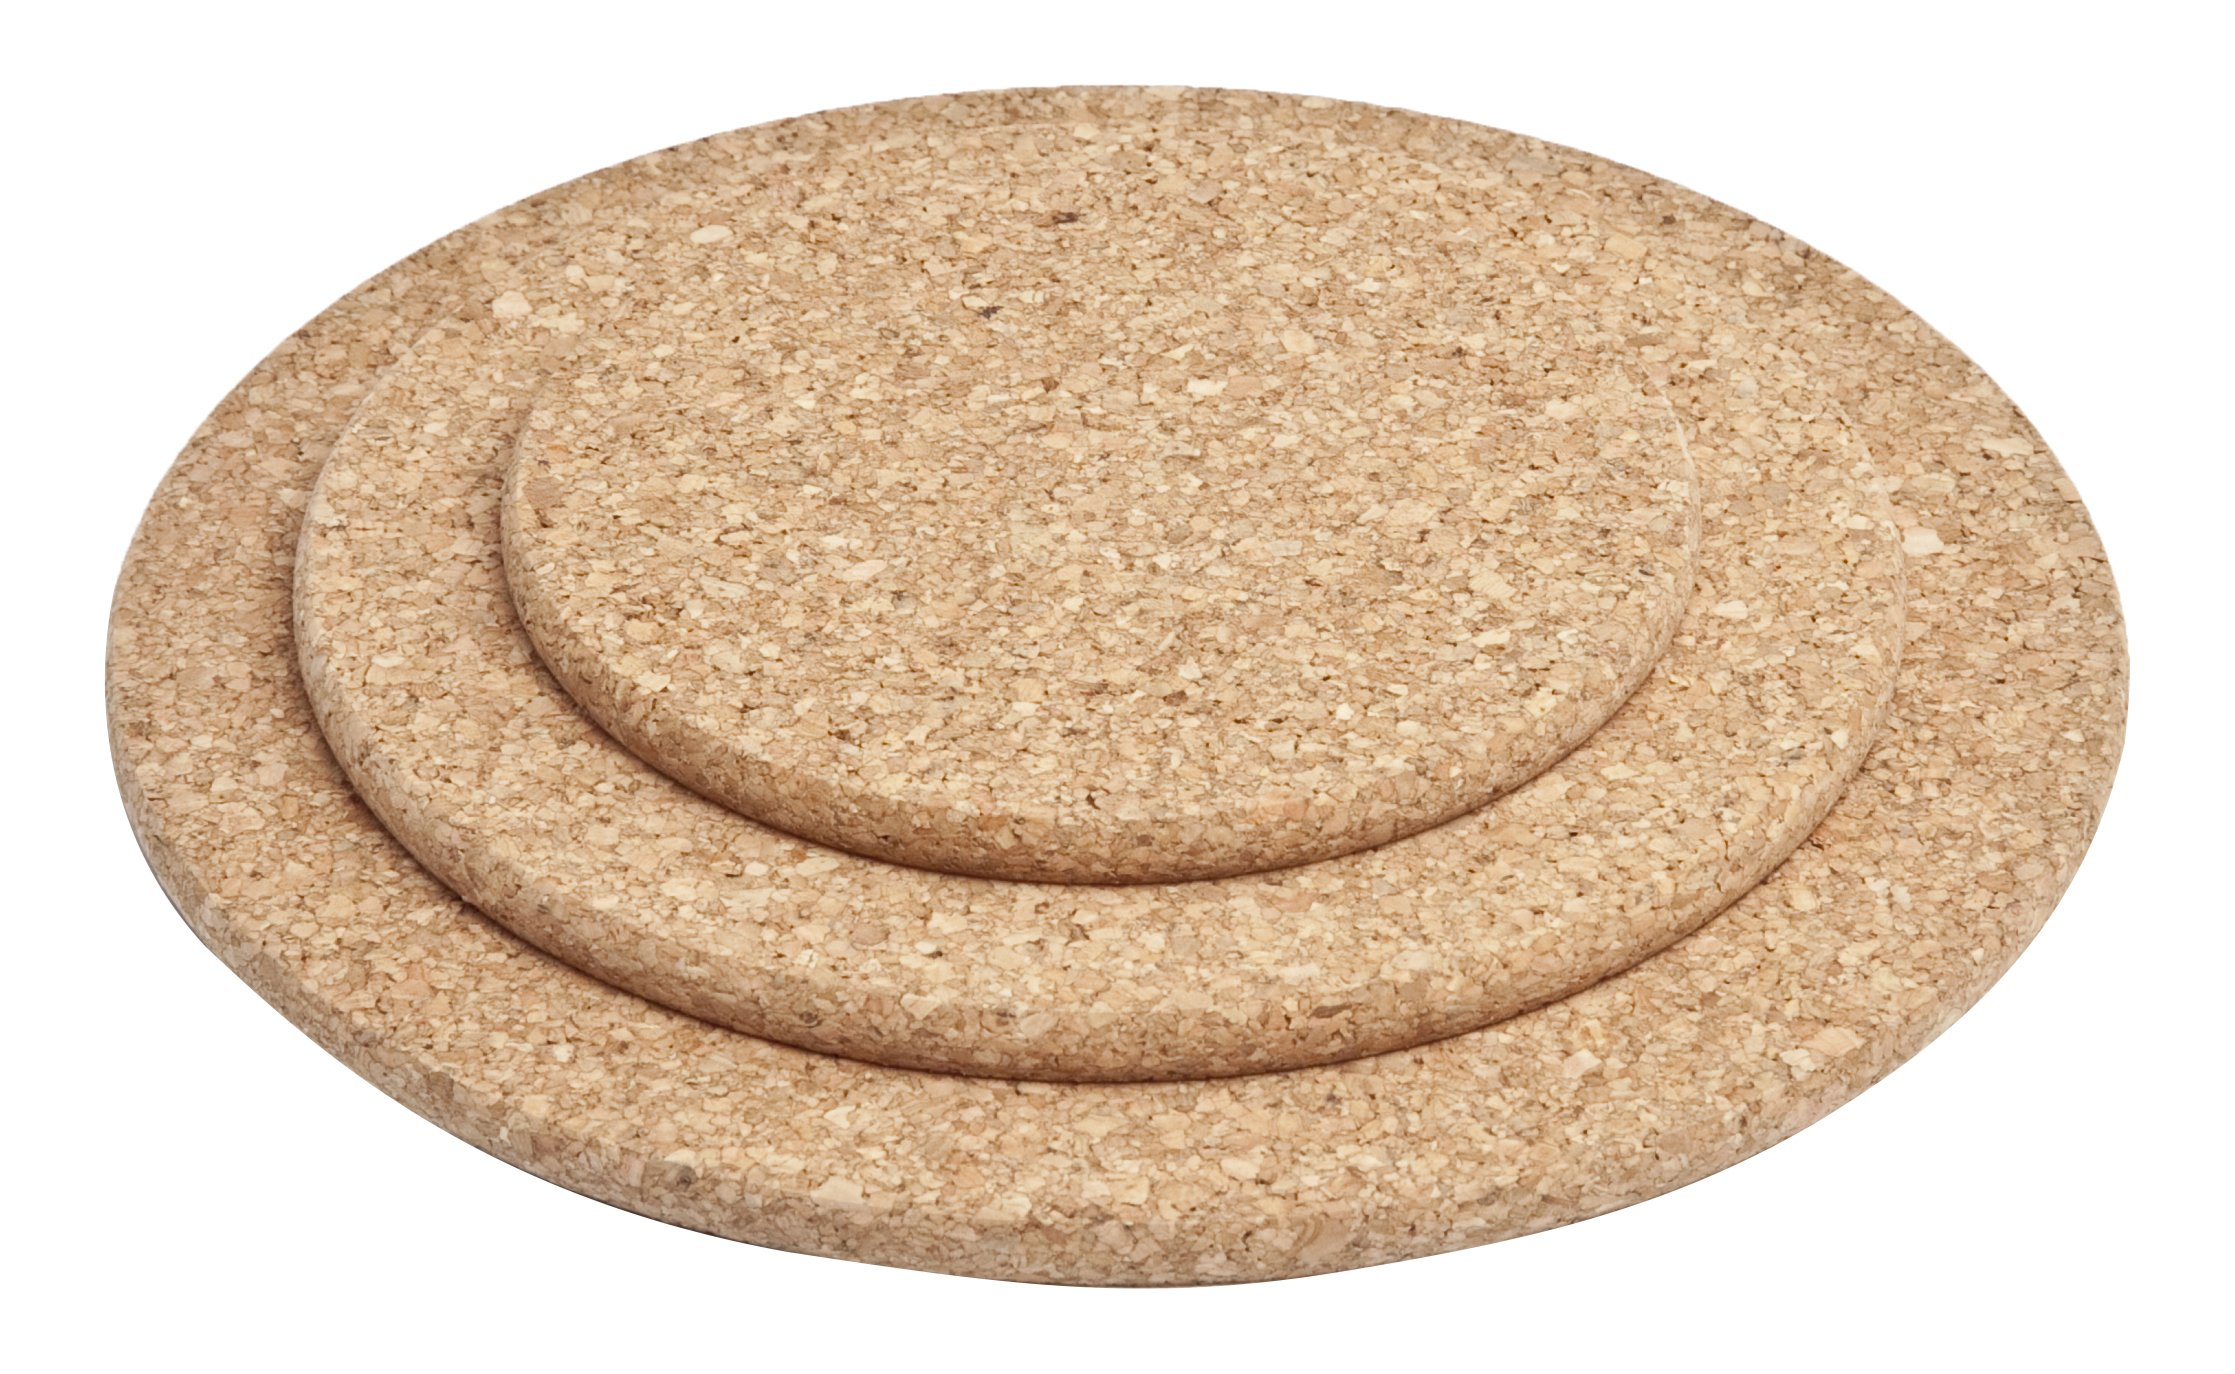 Cork Nature 490525 Cork Trivets, Round (Set of 3), 6'', 8'', and 10''